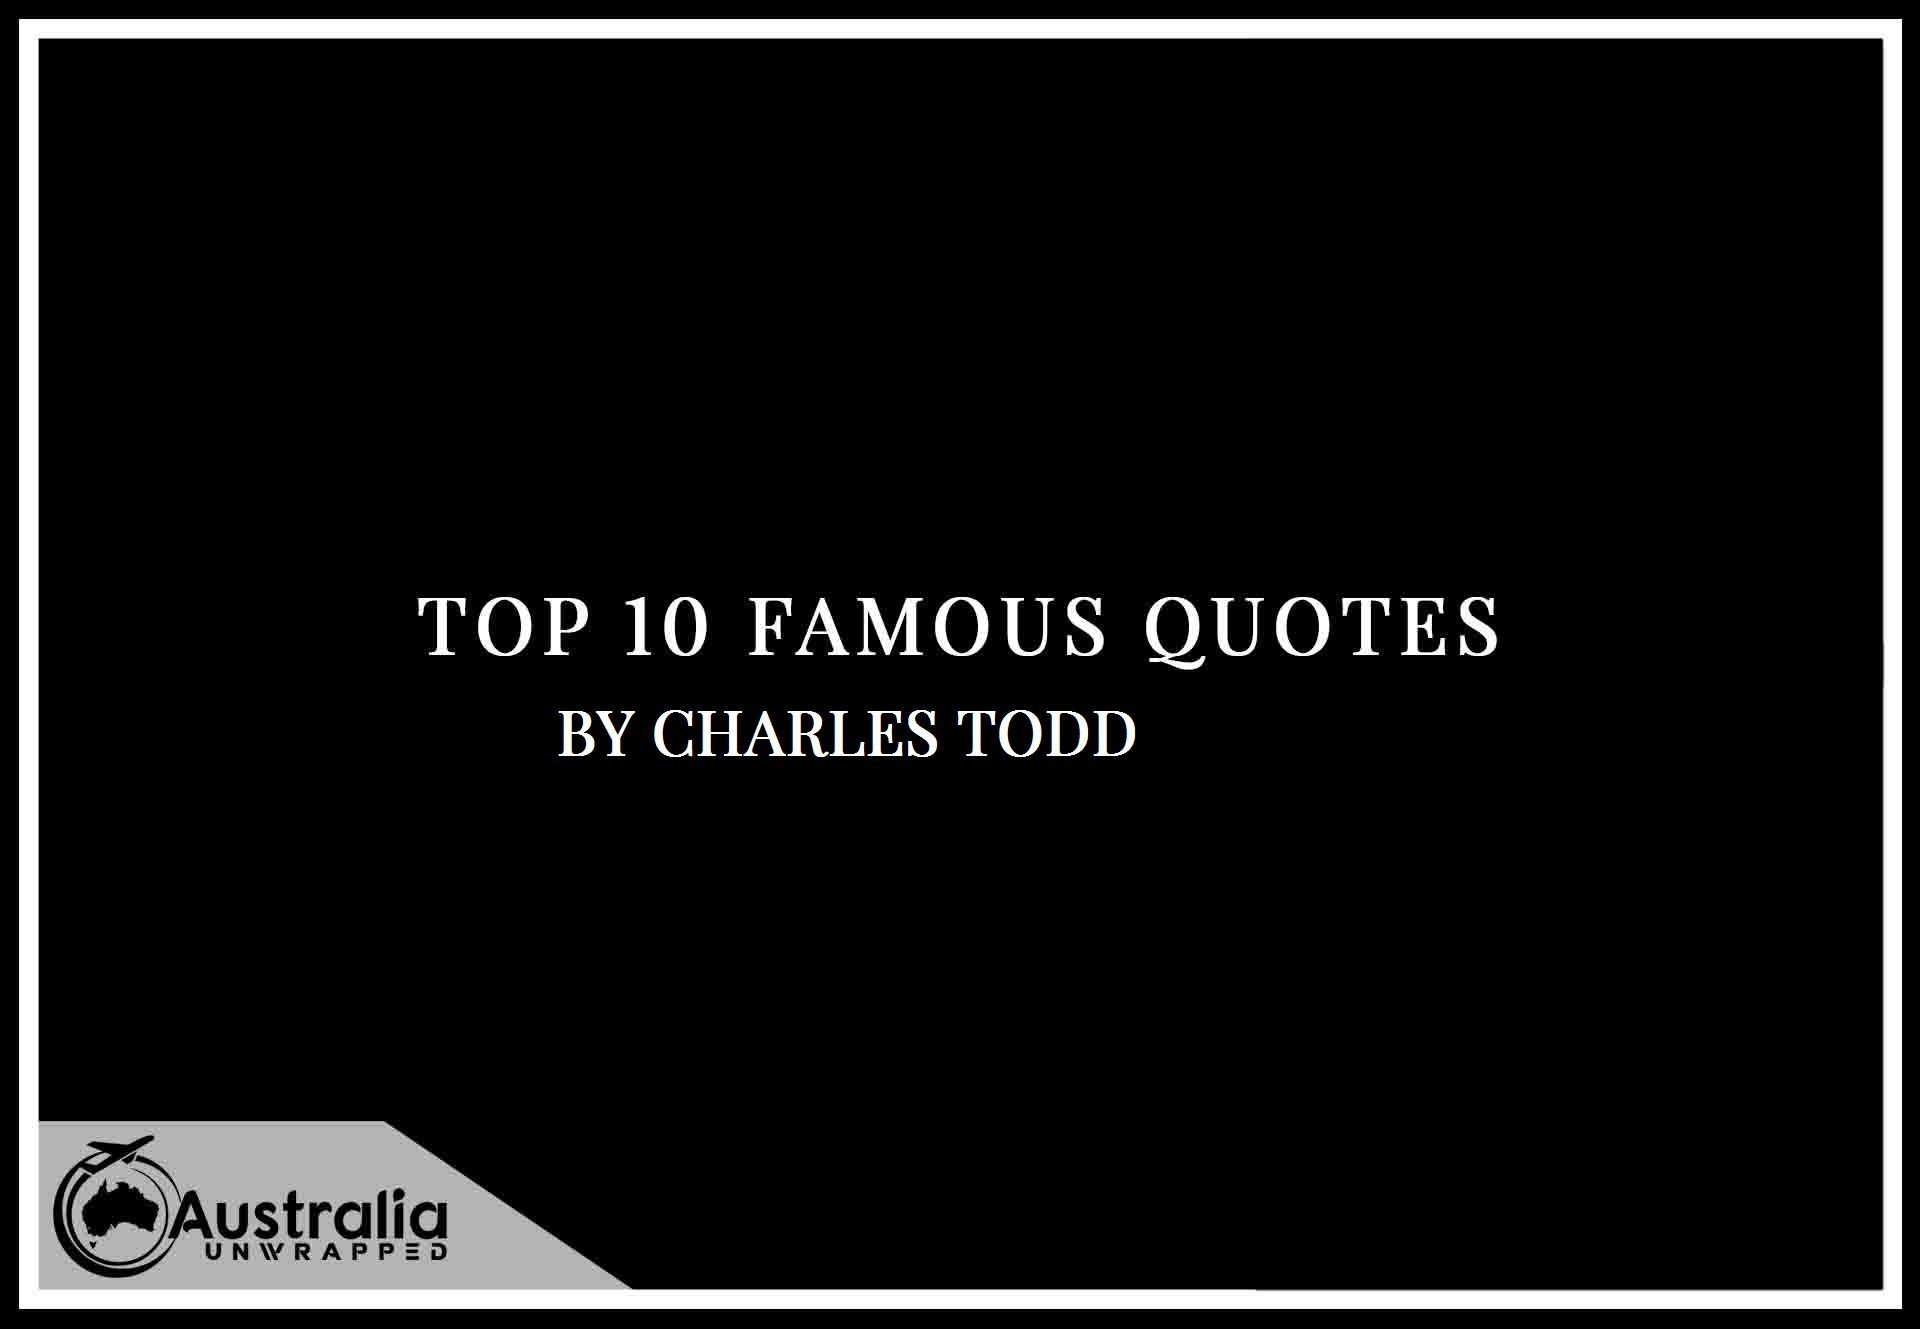 Charles Todd's Top 10 Popular and Famous Quotes